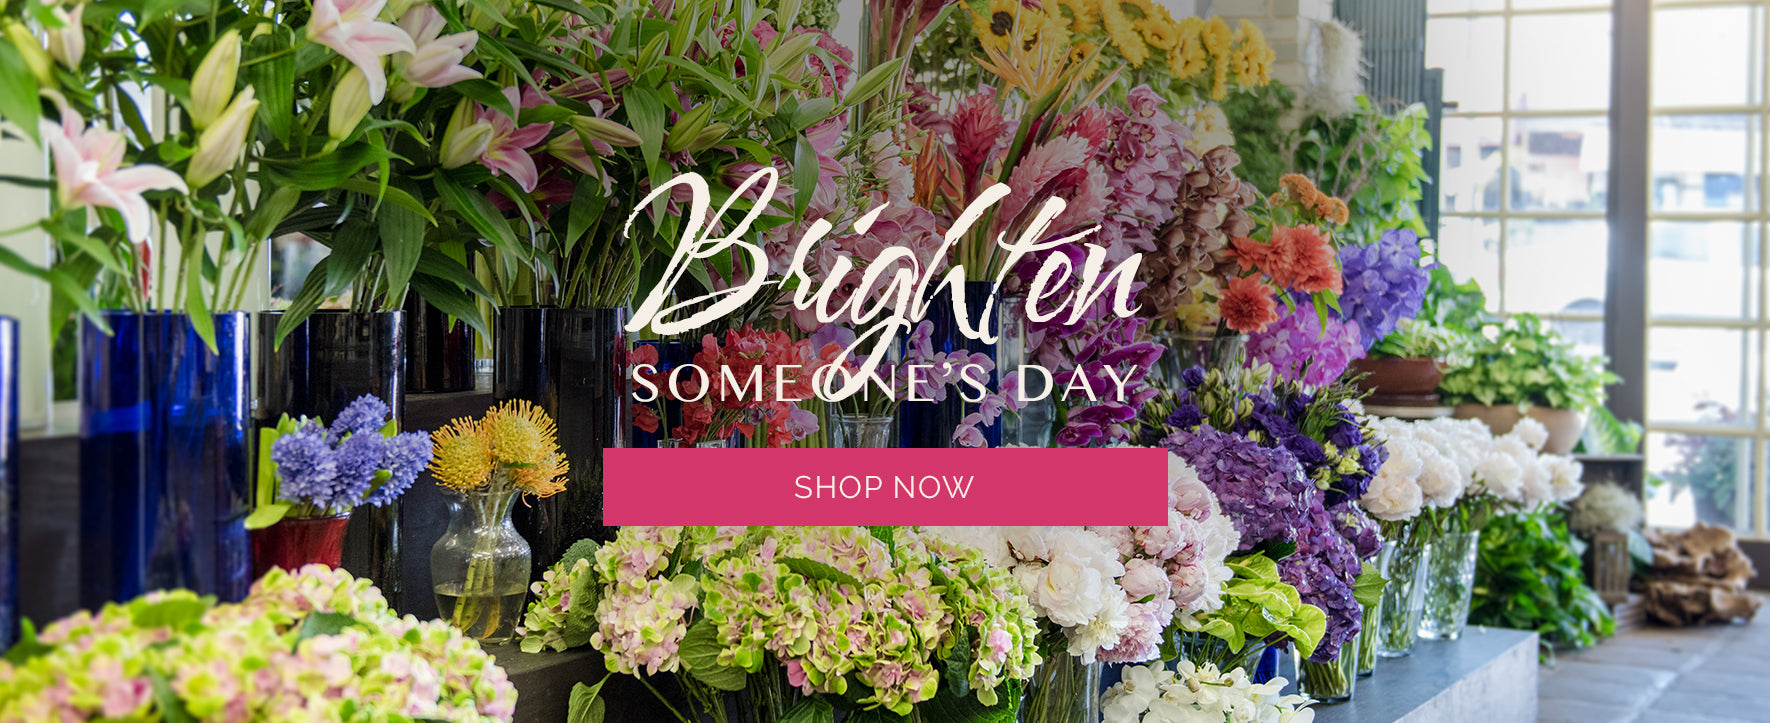 https://ne-flower-boutique.myshopify.com/admin/themes/8941425?key=assets%2Fphiladelphia_florist_ne_flower_boutique.jpg